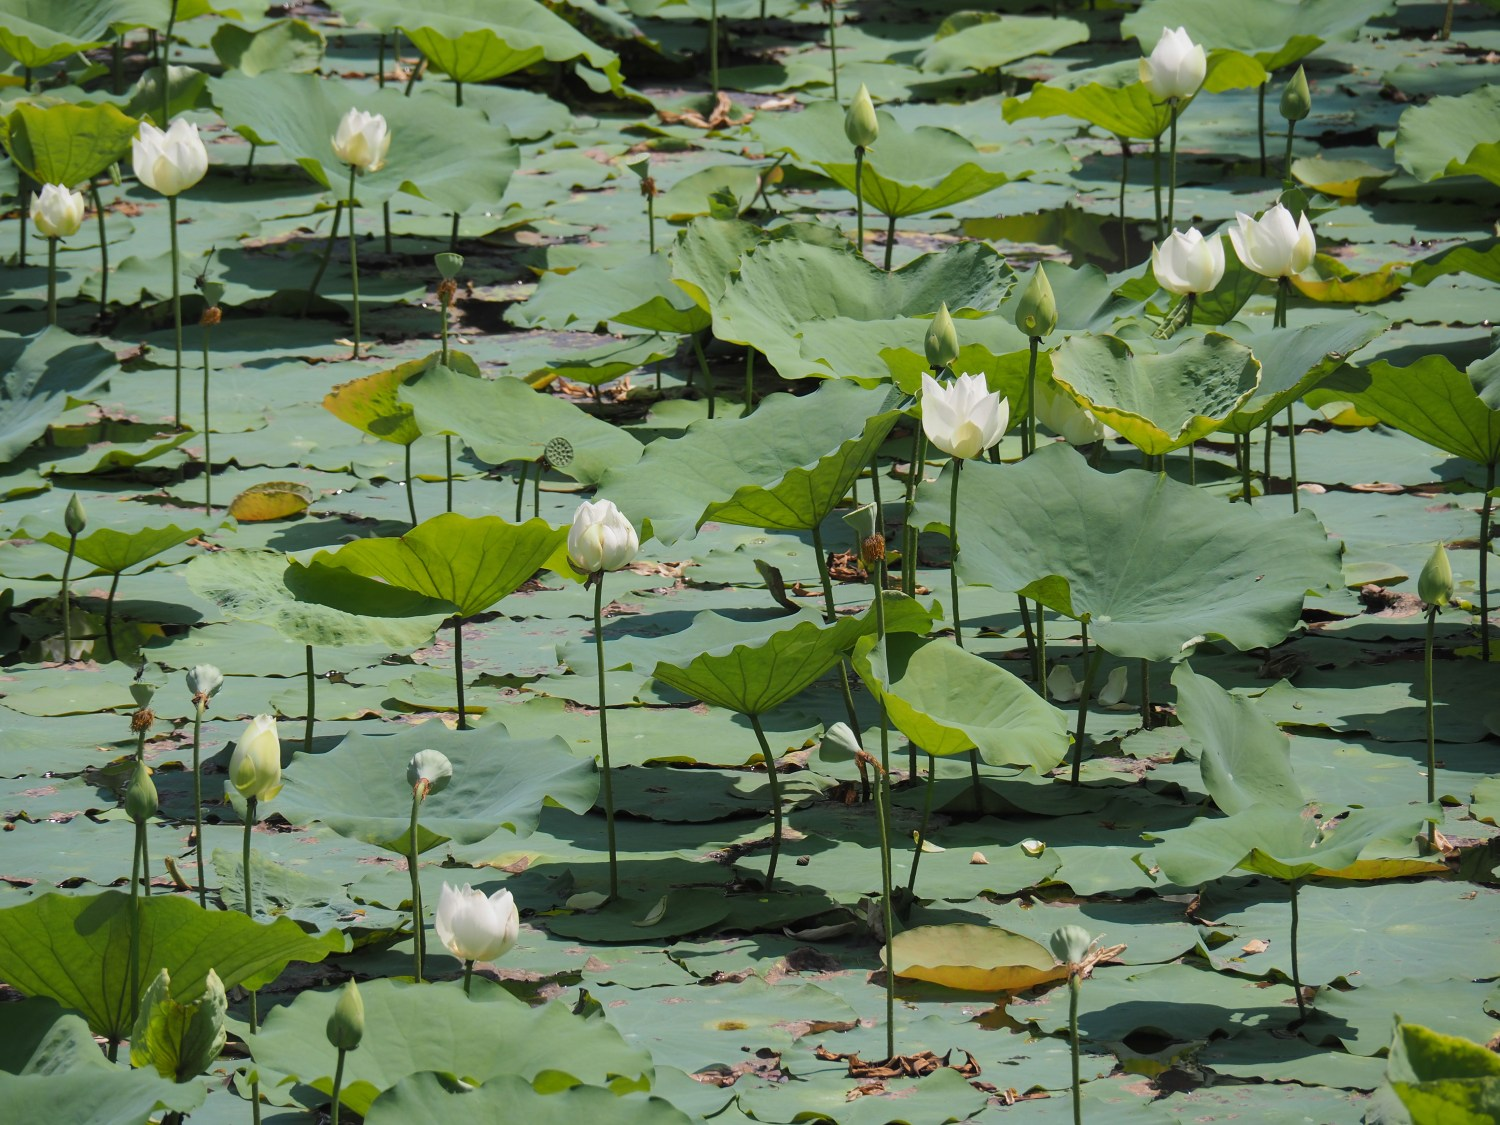 No mud, no lotus. Simple mindfulness wisdom when things are tough